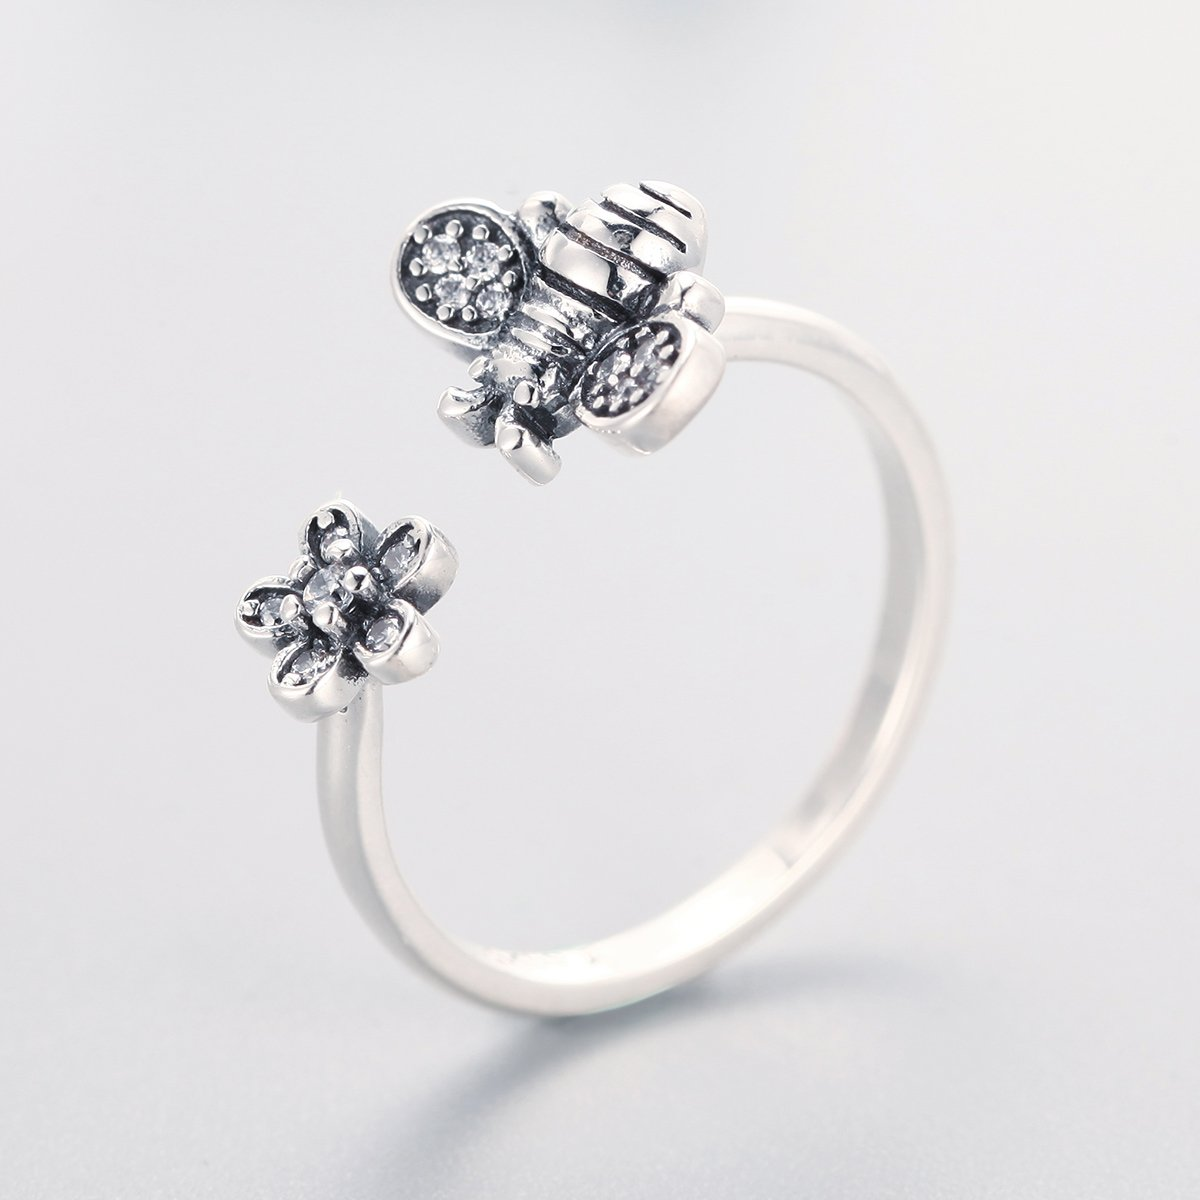 The Kiss Cute Bee /& Poetic Daisy Flower Open 925 Sterling Silver Adjustable Ring Clear CZ